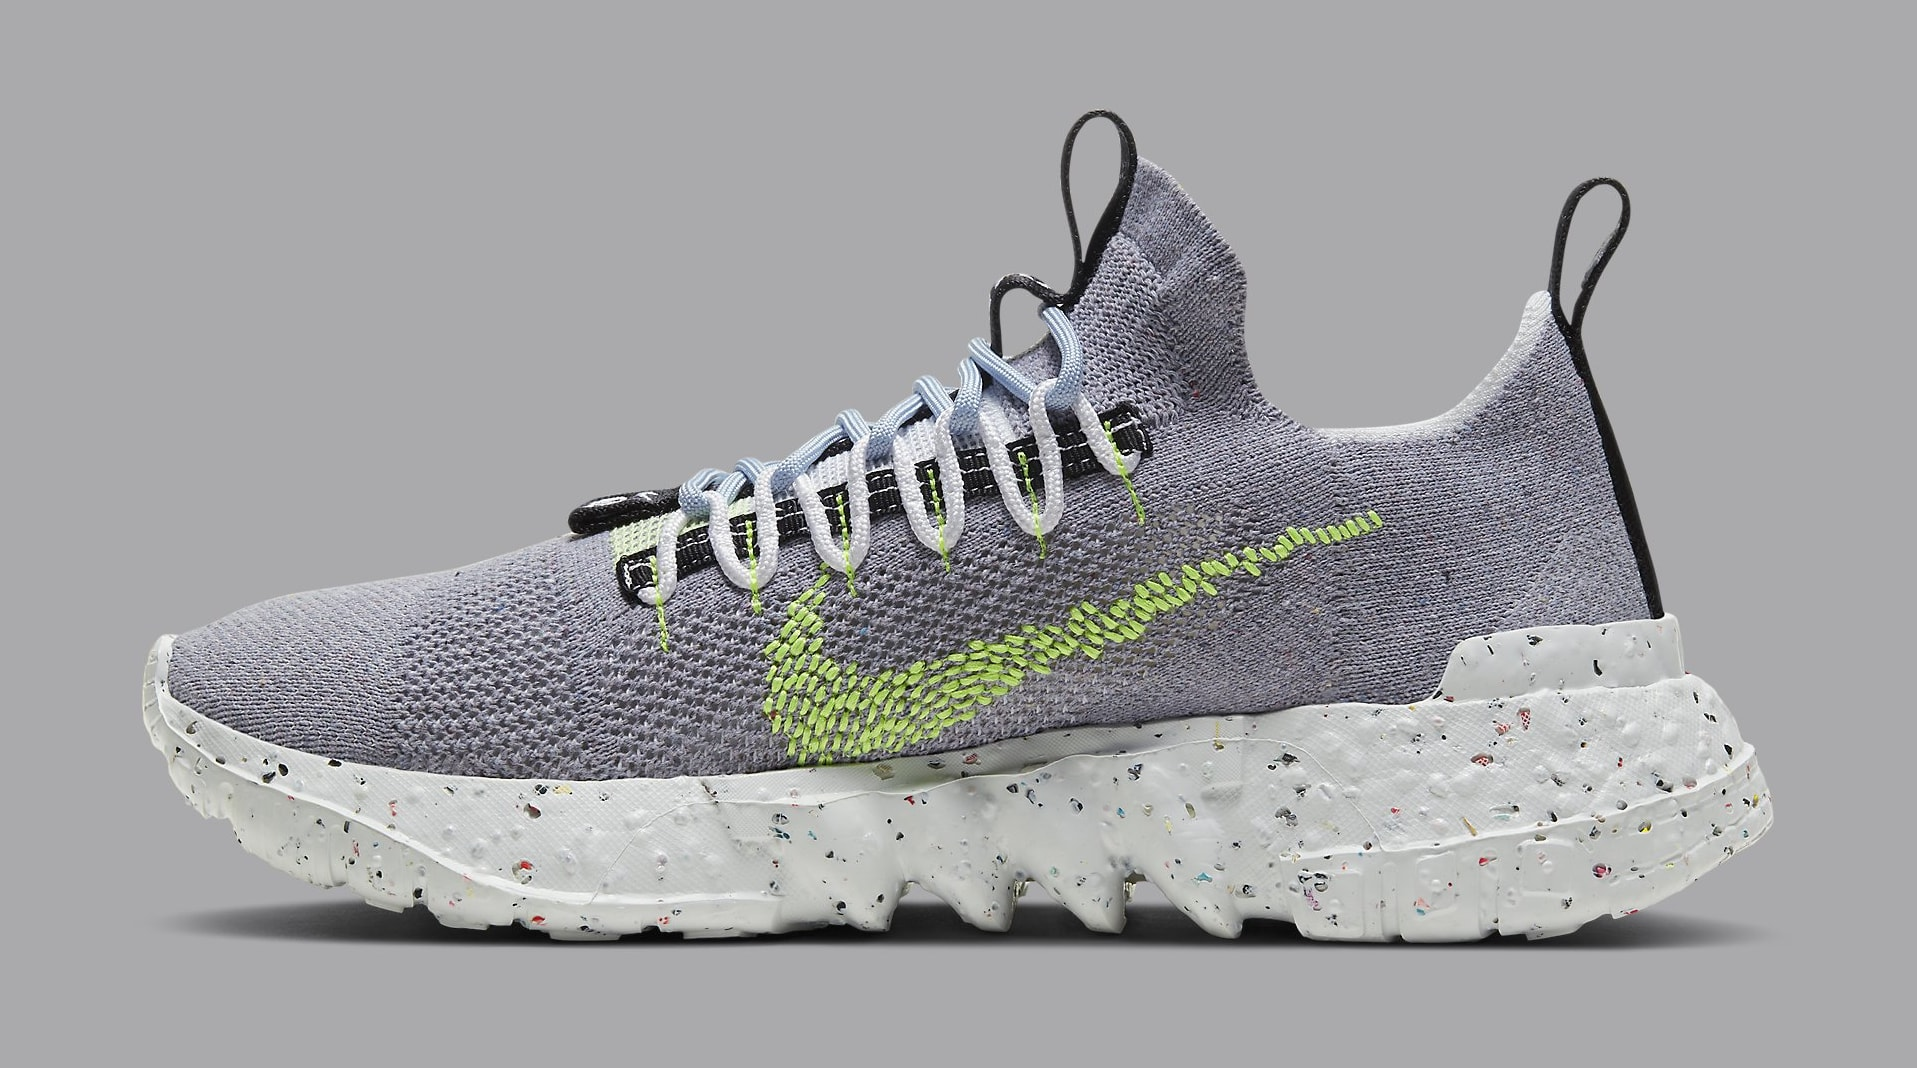 Nike Space Hippie 01 'Grey/Volt' CQ3986-002 Lateral